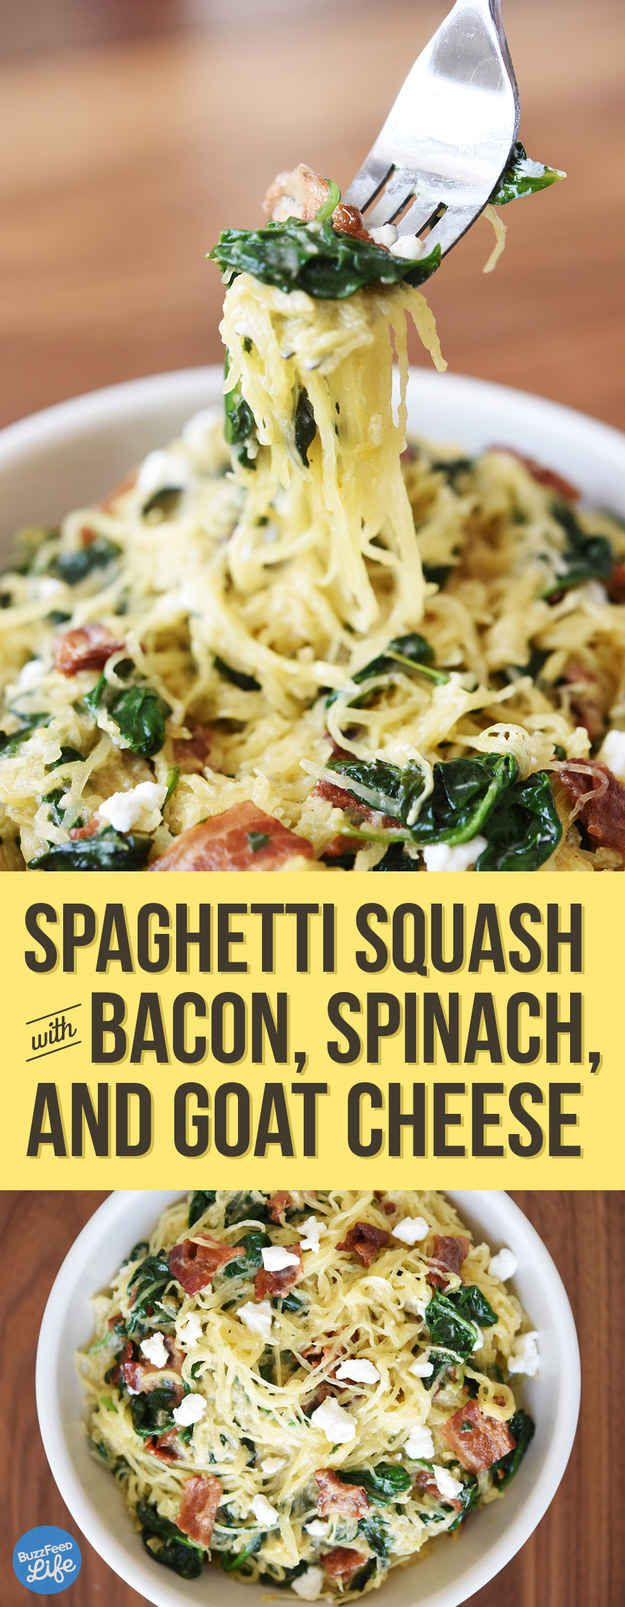 1. Spaghetti Squash With Bacon, Spinach, and Goat Cheese - a few easy tweaks and it's paleo friendly!